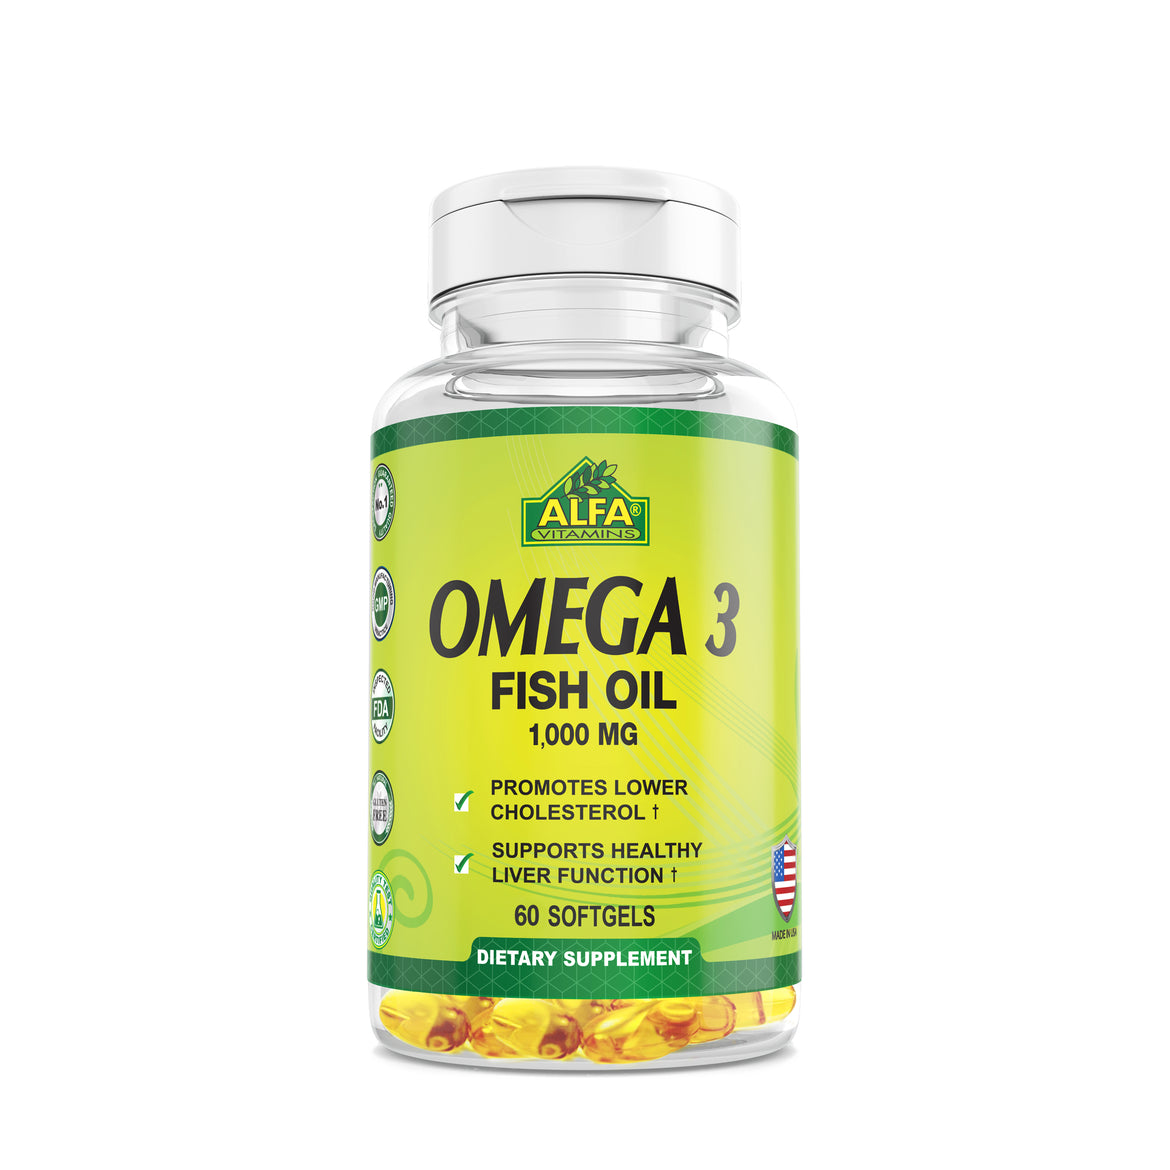 Omega 3 Fish Oil 1000 mg - 60 softgels